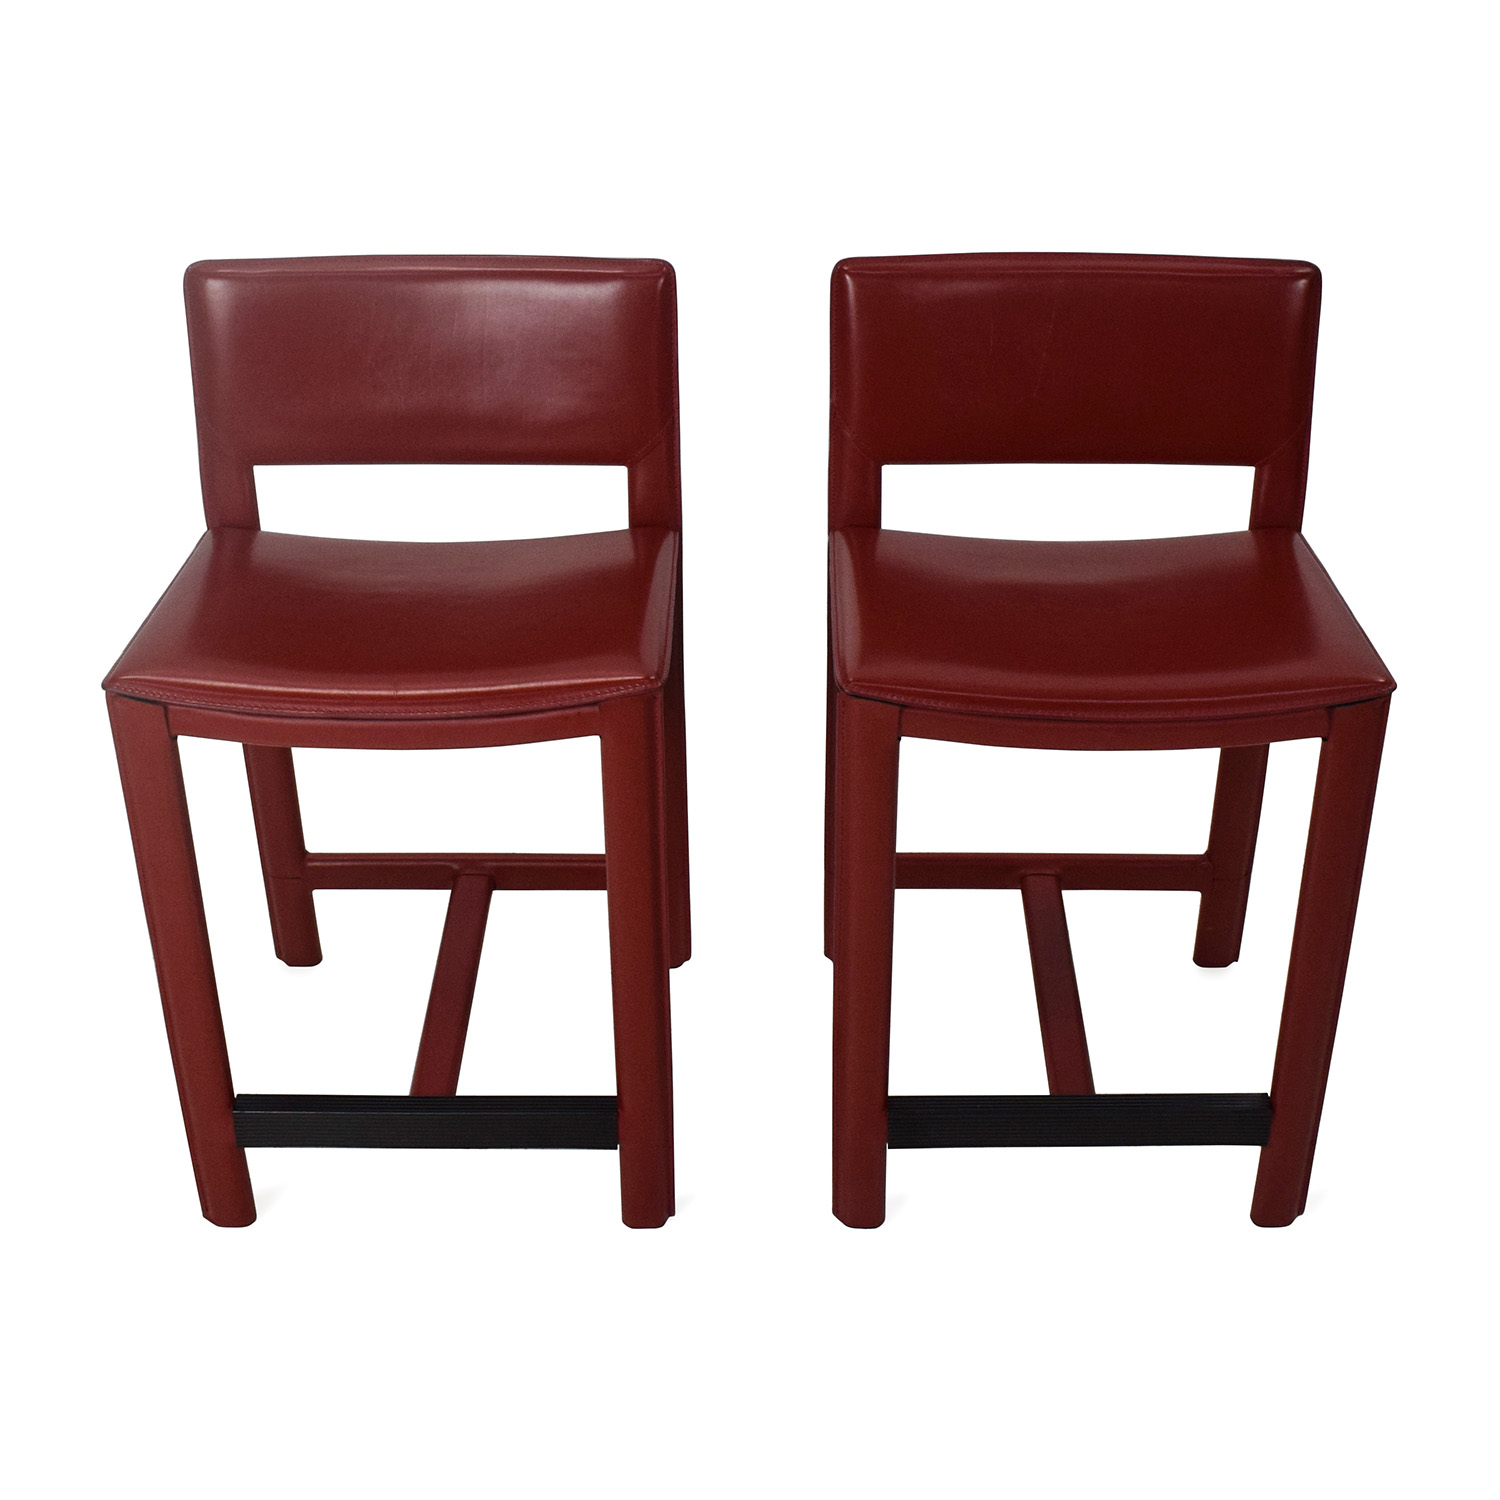 buy Room and Board Room & Board Sava Leather Bar Stool Pair online